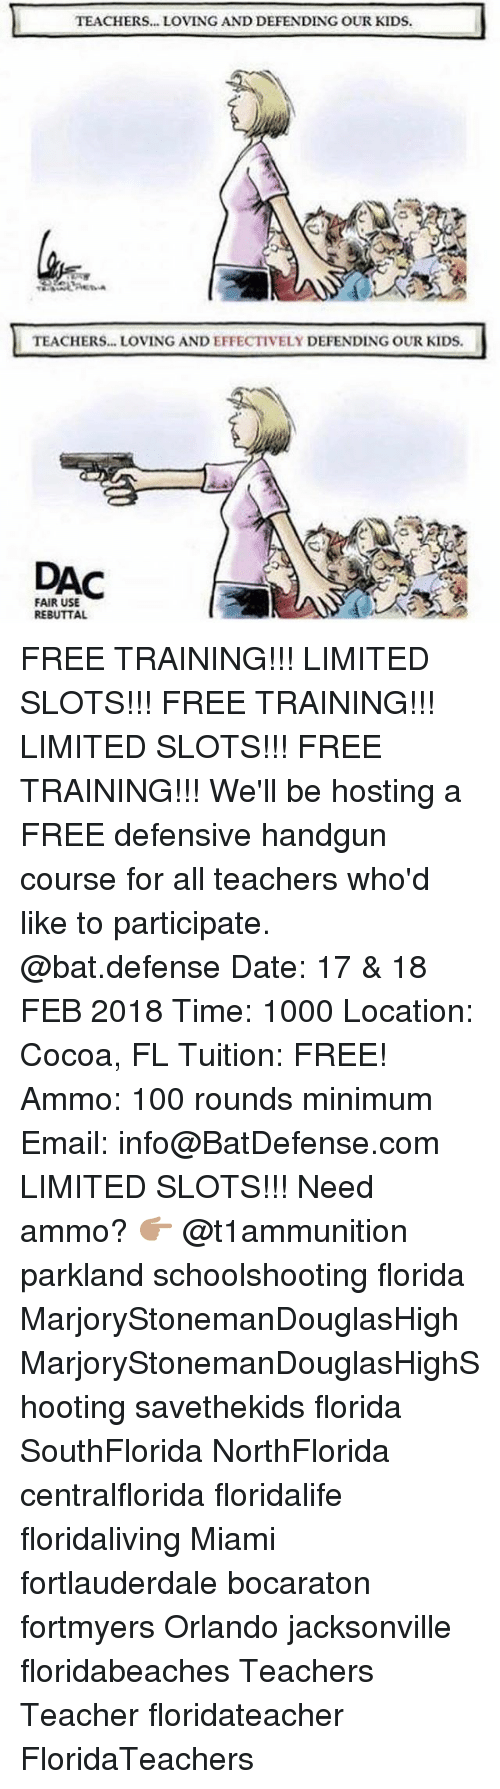 dac: TEACHERS... LOVING AND DEFENDING OUR KIDS  TEACHERS... LOVING AND EFFECTIVELY DEFENDING OUR KIDS.  DAC  FAIR USE  REBUTTAL FREE TRAINING!!! LIMITED SLOTS!!! FREE TRAINING!!! LIMITED SLOTS!!! FREE TRAINING!!! We'll be hosting a FREE defensive handgun course for all teachers who'd like to participate. @bat.defense Date: 17 & 18 FEB 2018 Time: 1000 Location: Cocoa, FL Tuition: FREE! Ammo: 100 rounds minimum Email: info@BatDefense.com LIMITED SLOTS!!! Need ammo? 👉🏽 @t1ammunition parkland schoolshooting florida MarjoryStonemanDouglasHigh MarjoryStonemanDouglasHighShooting savethekids florida SouthFlorida NorthFlorida centralflorida floridalife floridaliving Miami fortlauderdale bocaraton fortmyers Orlando jacksonville floridabeaches Teachers Teacher floridateacher FloridaTeachers